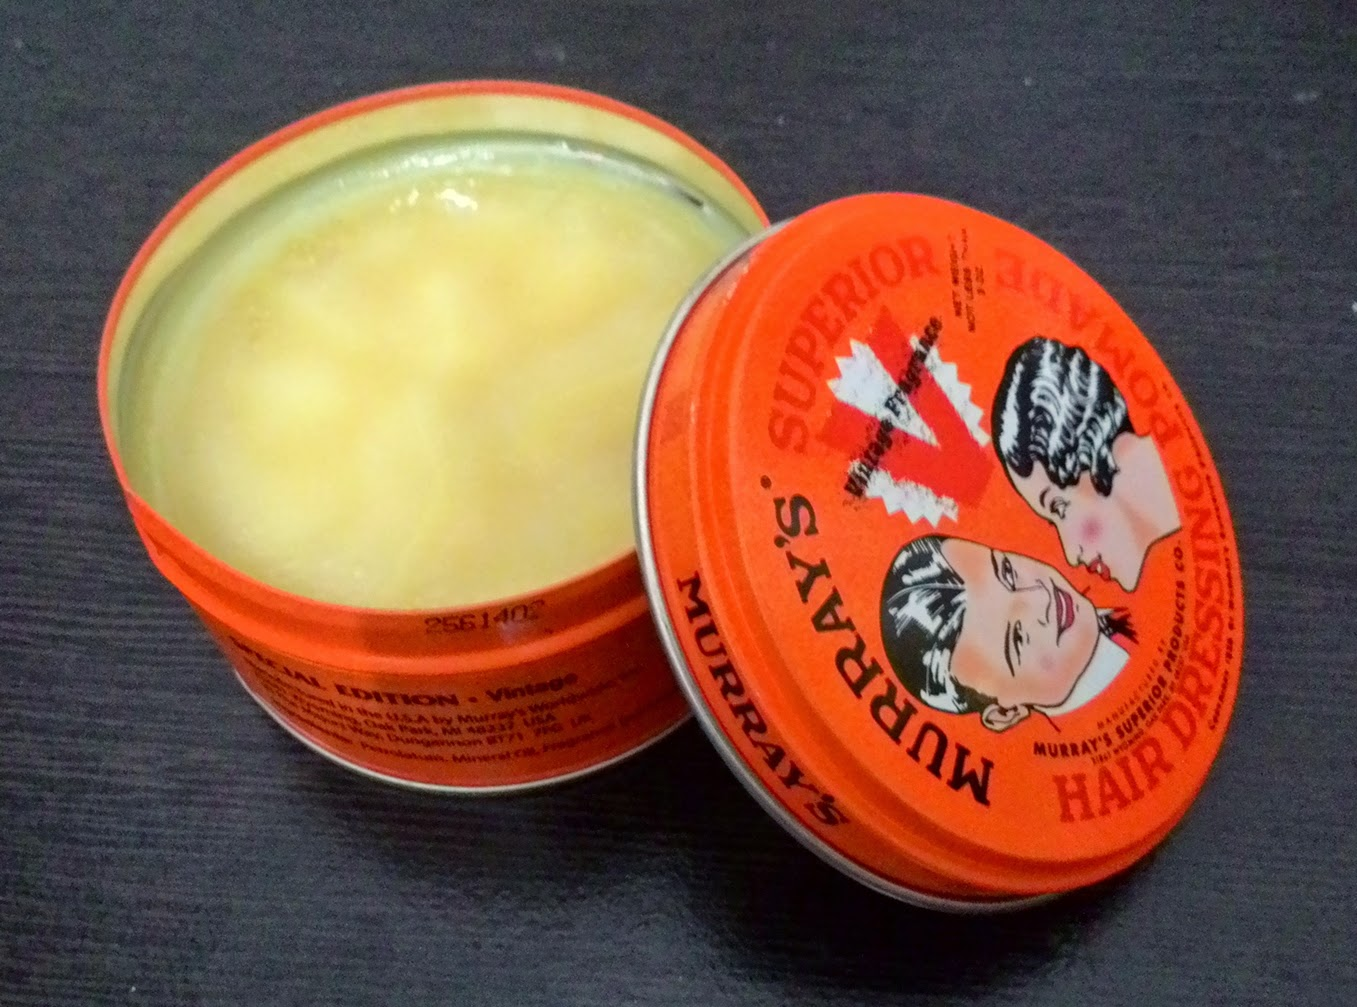 MURRAY's Superior Hair Dressing Pomade (Vintage Fragrance)